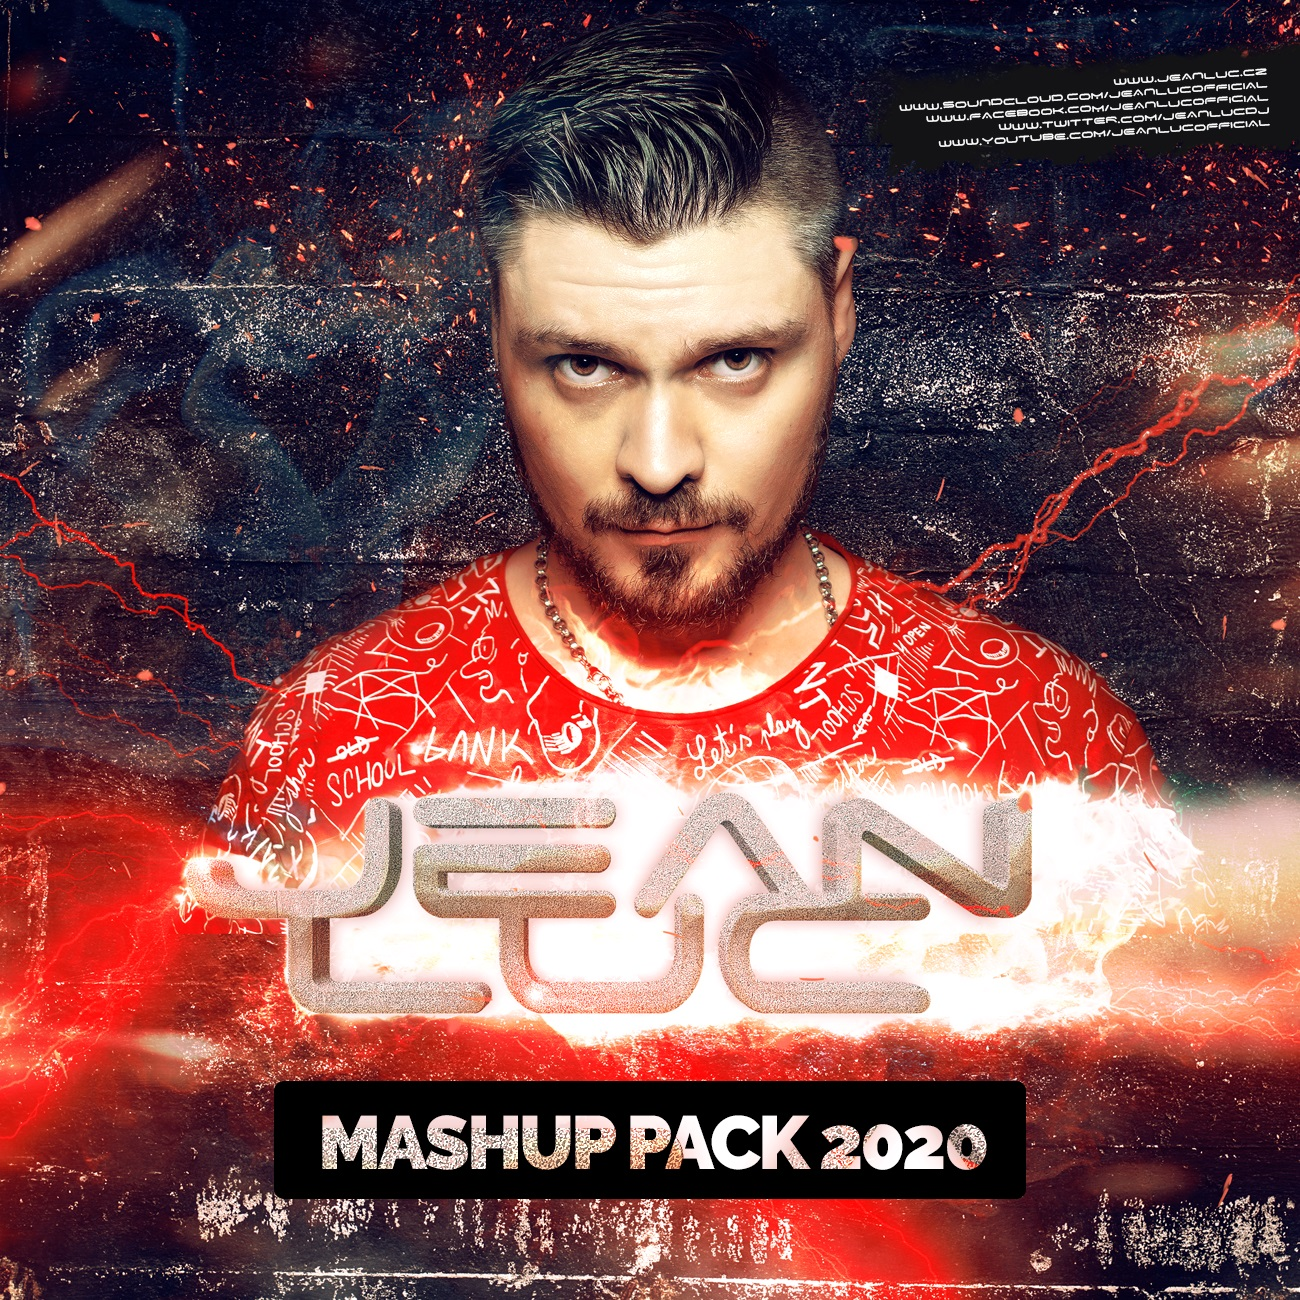 Jean Luc - Mashup Pack 2020